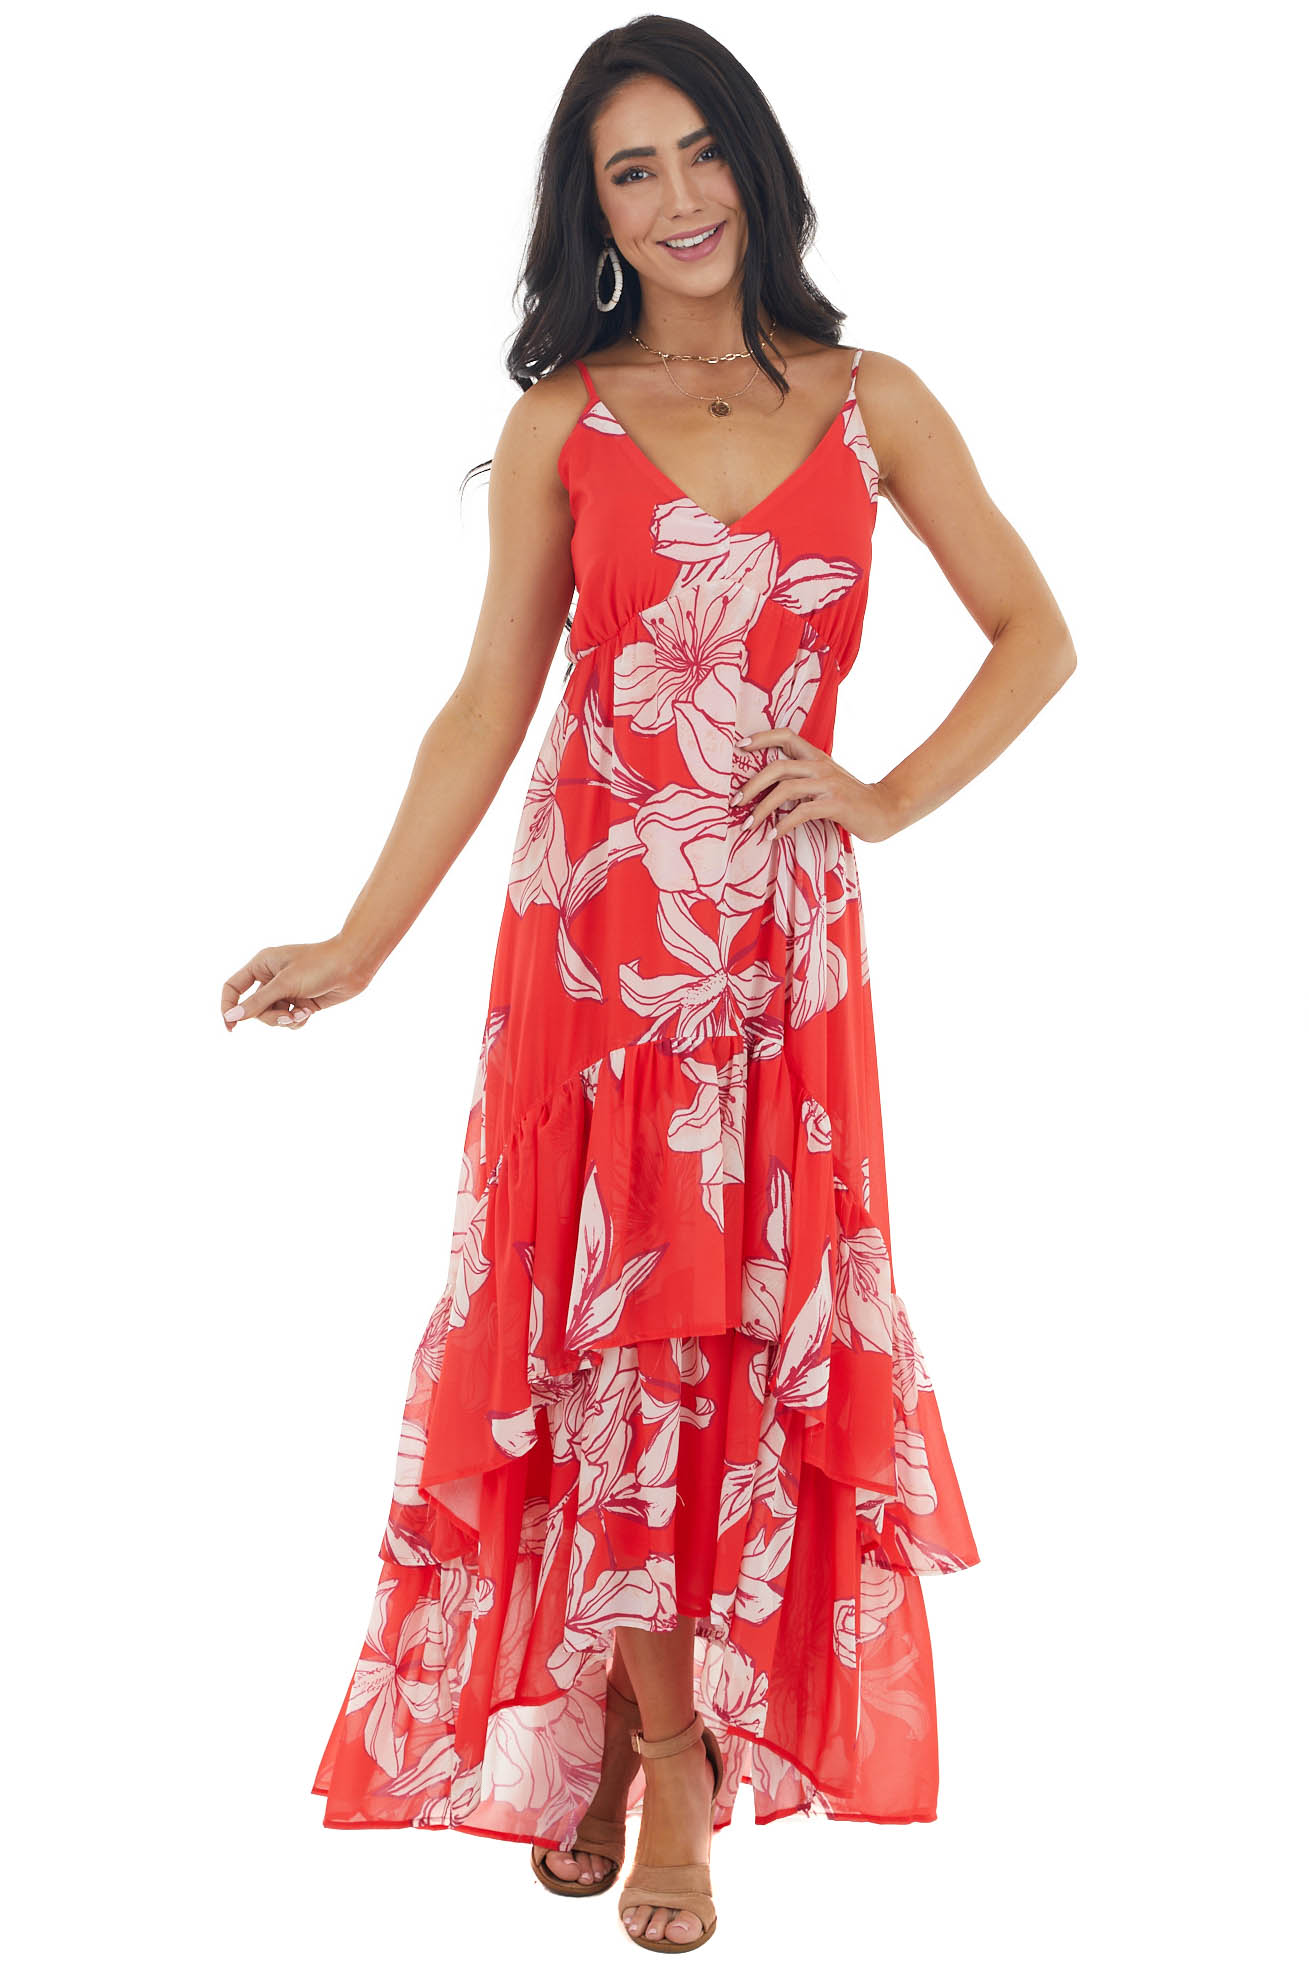 Lipstick Red Large Floral Print High Low Maxi Woven Dress